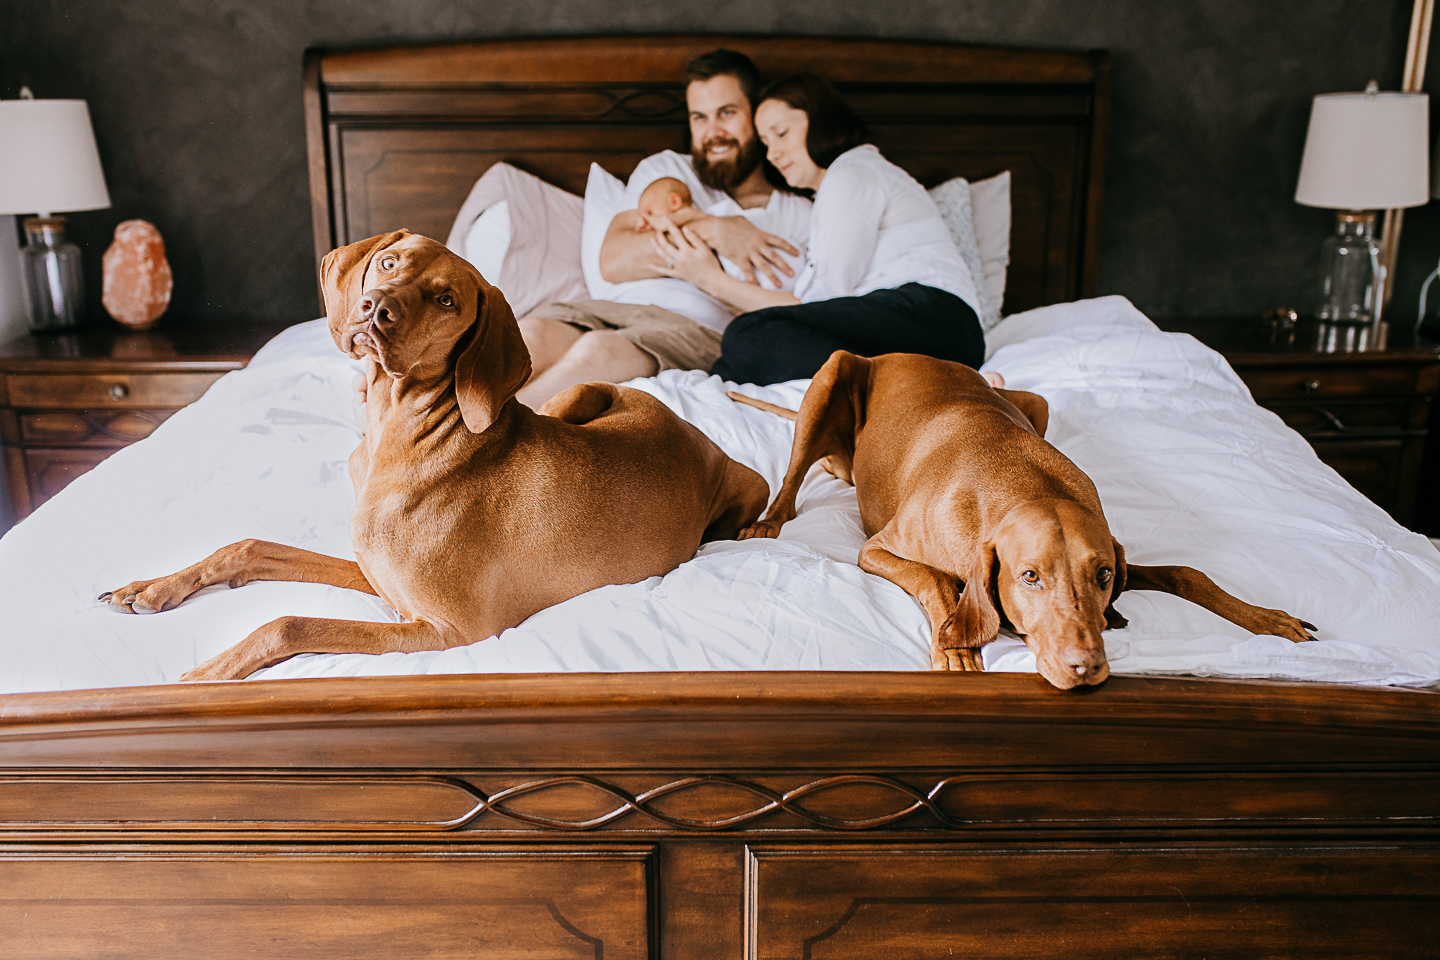 At Home Newborn Session with Dogs